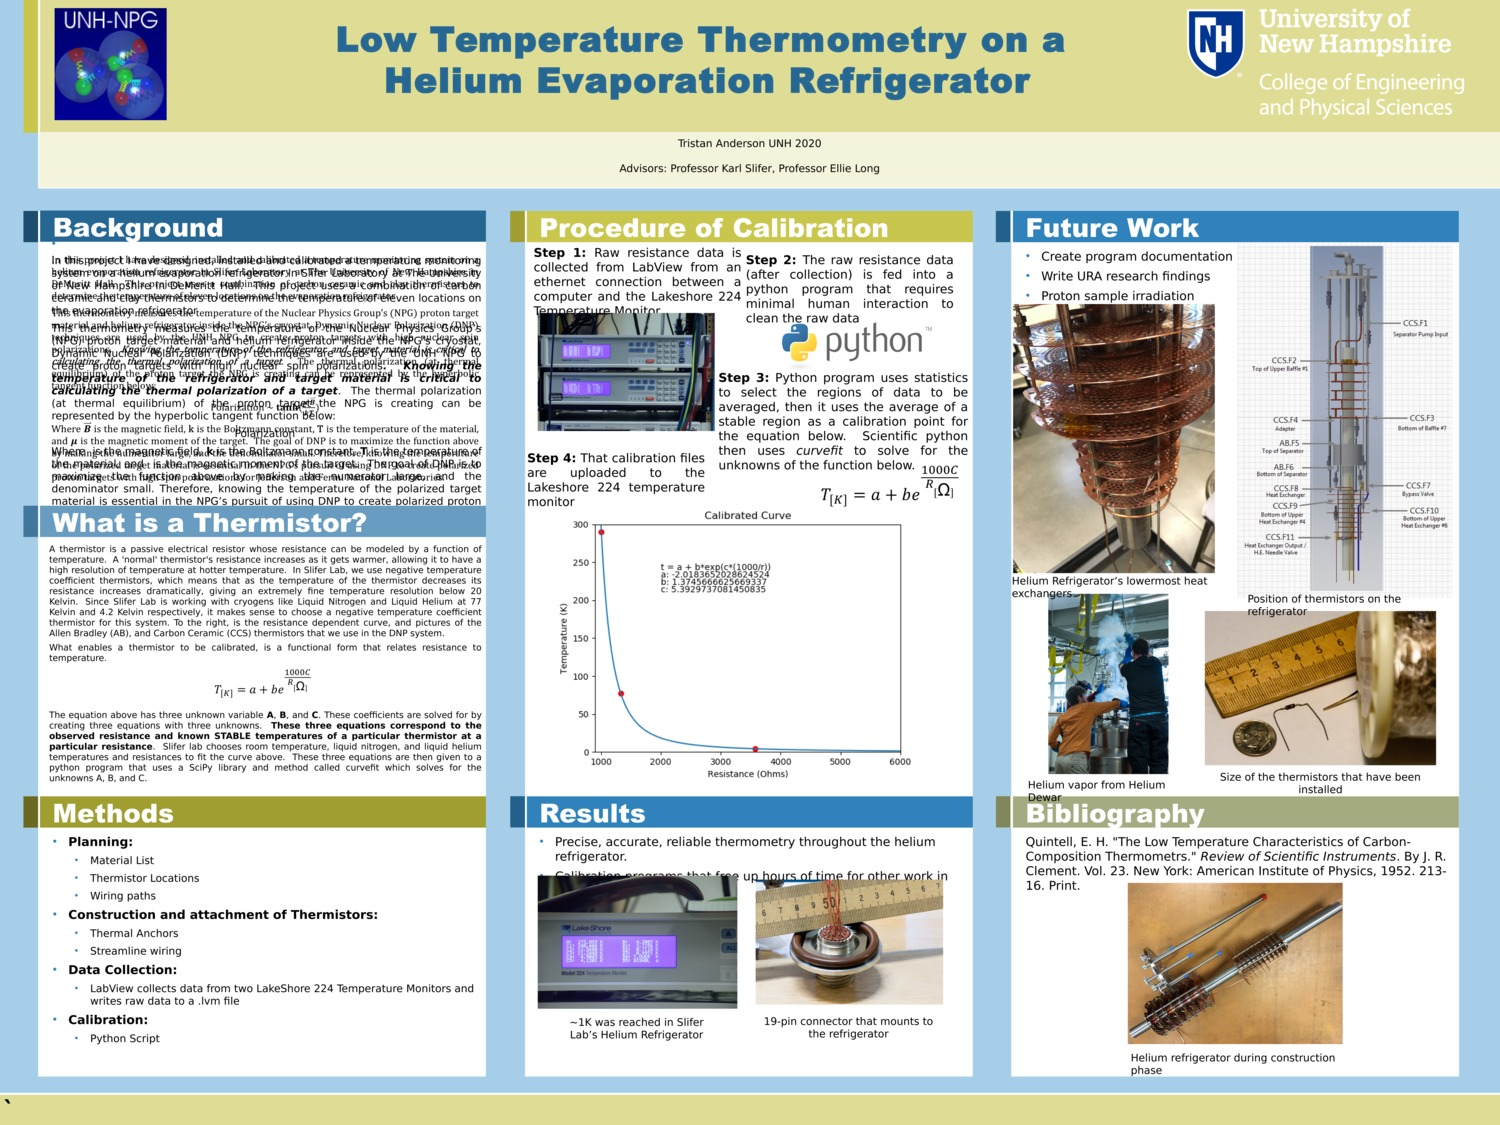 Low Temperature Thermometry On A Helium Evaporation Refrigerator by vipers356